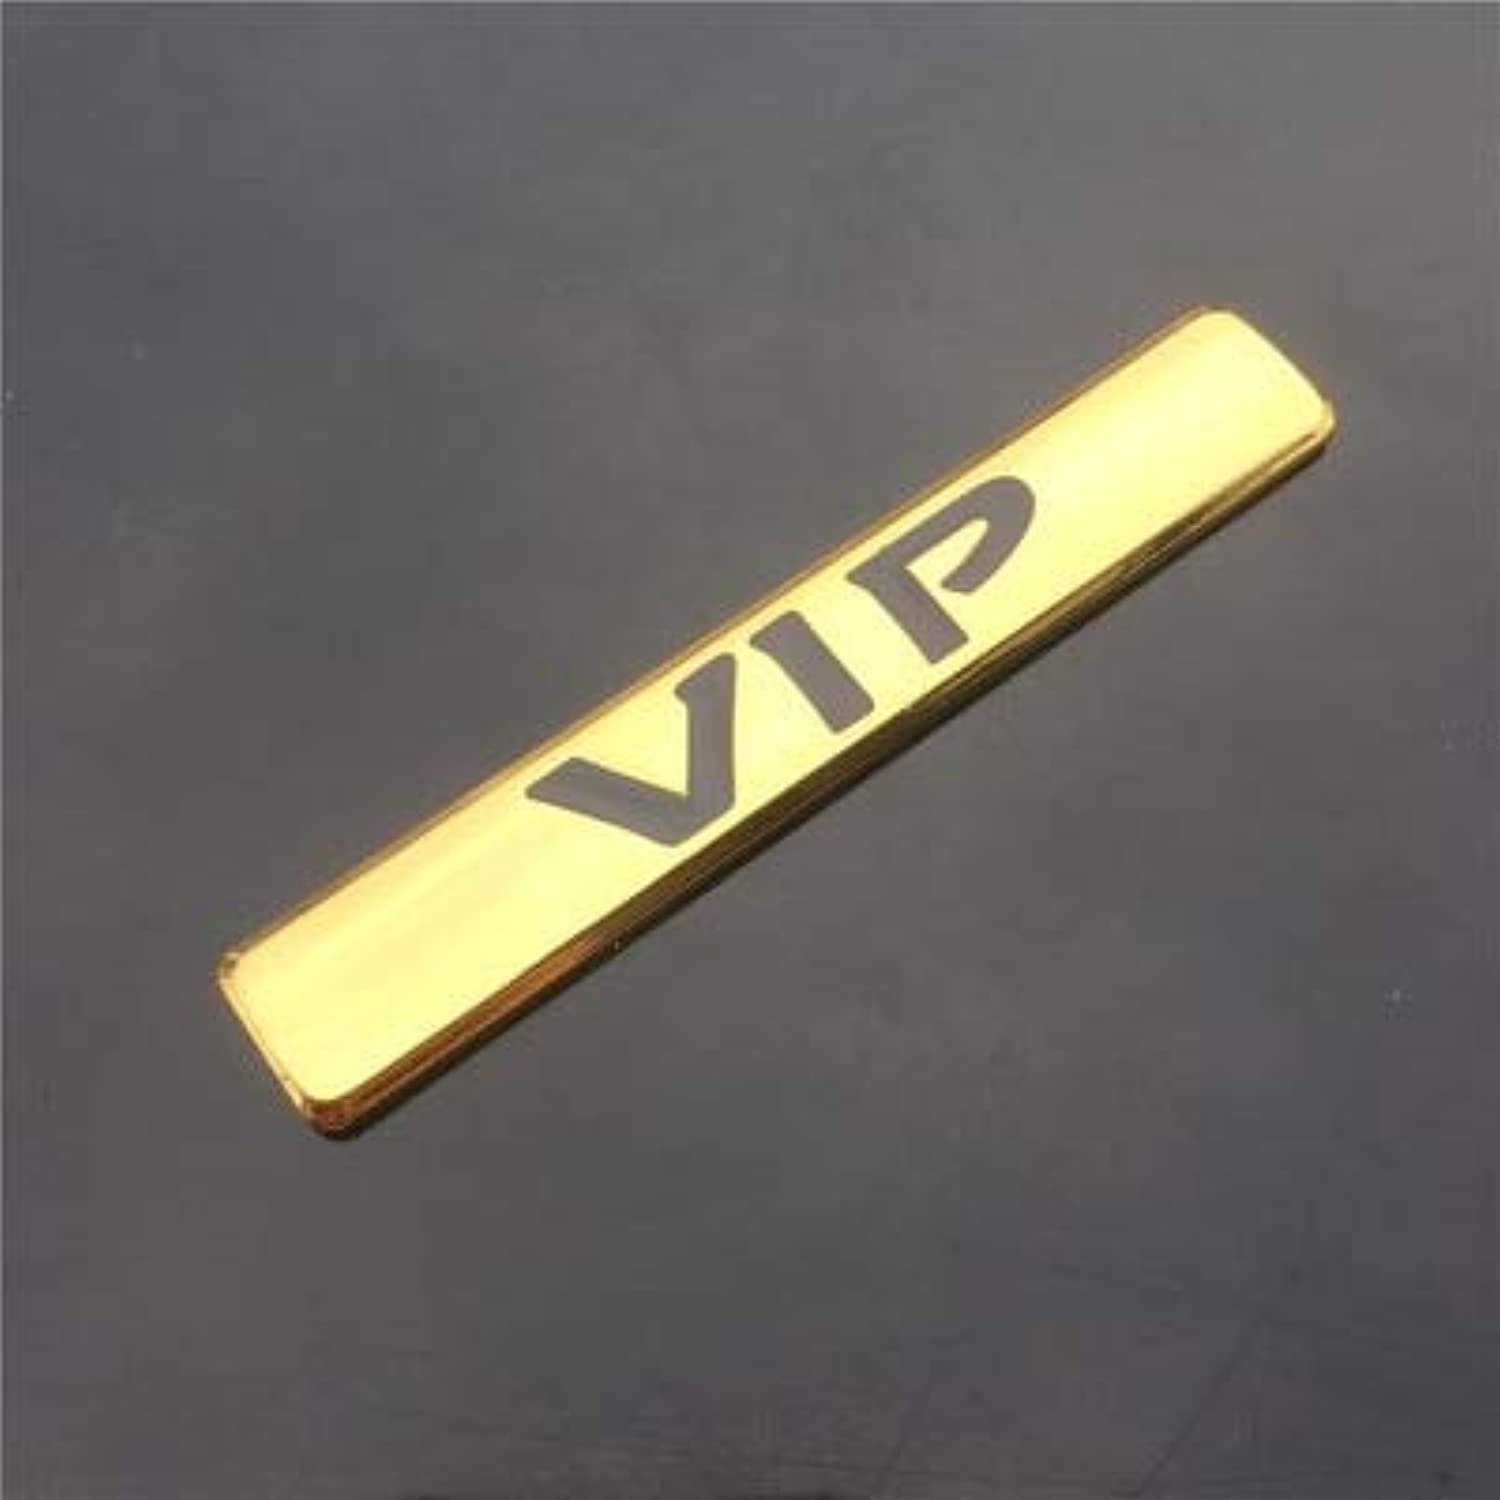 Car Motorcycle Metal VIP Emblem Decal Sticker for Teana Peugeot BMW Ford Focus KIA Mazda Toyota Honda Car Side Decoration  (color Name  gold)